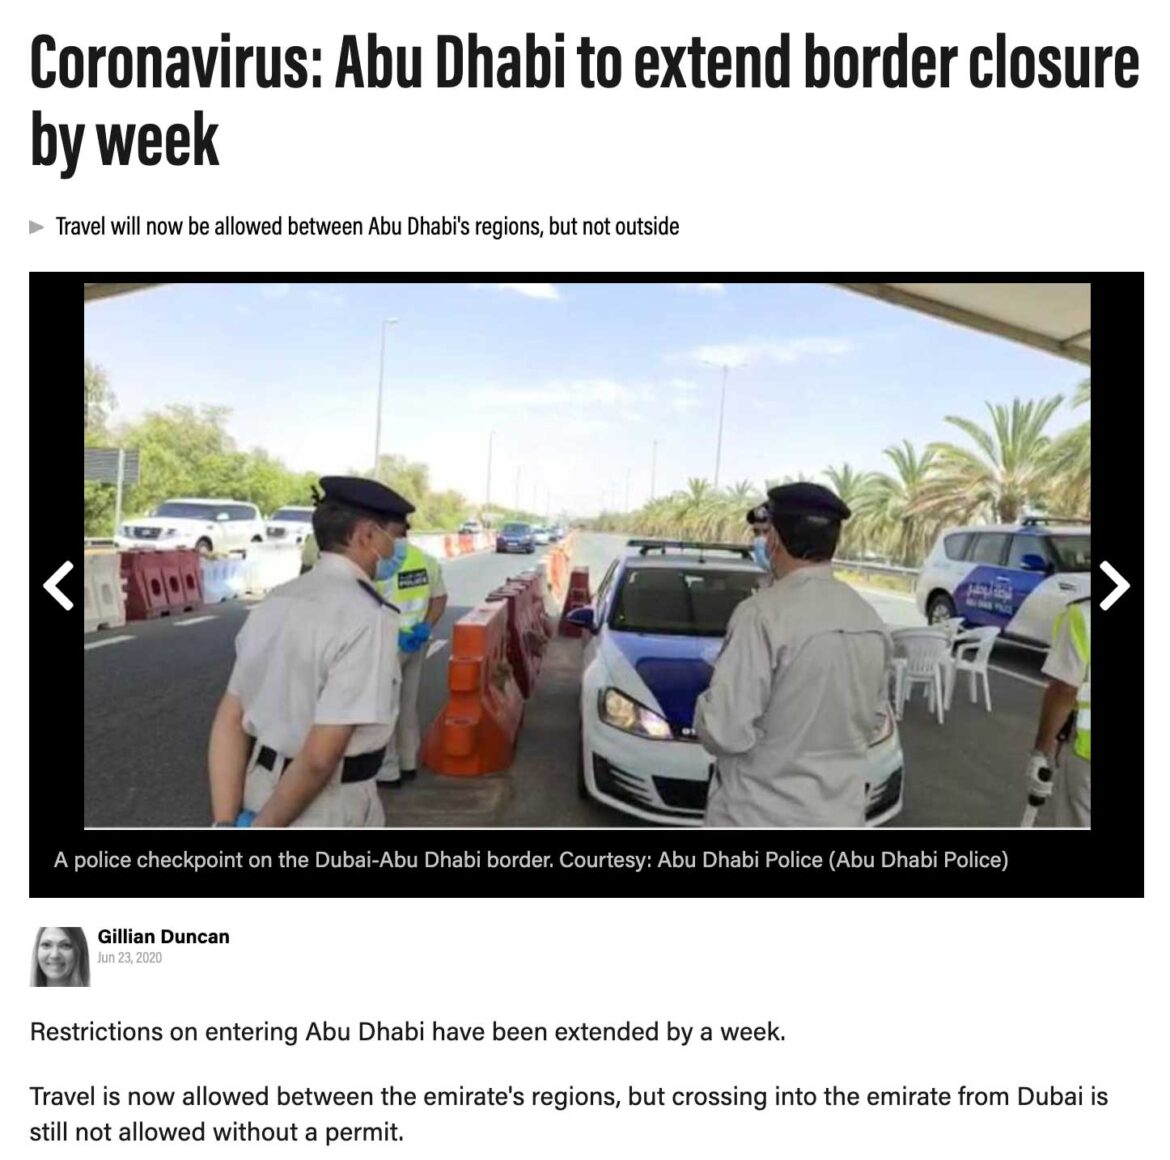 Local reporting in the National has kept readers updated on the requirements and status of the border control on the road leading from Dubai to Abu Dhabi.